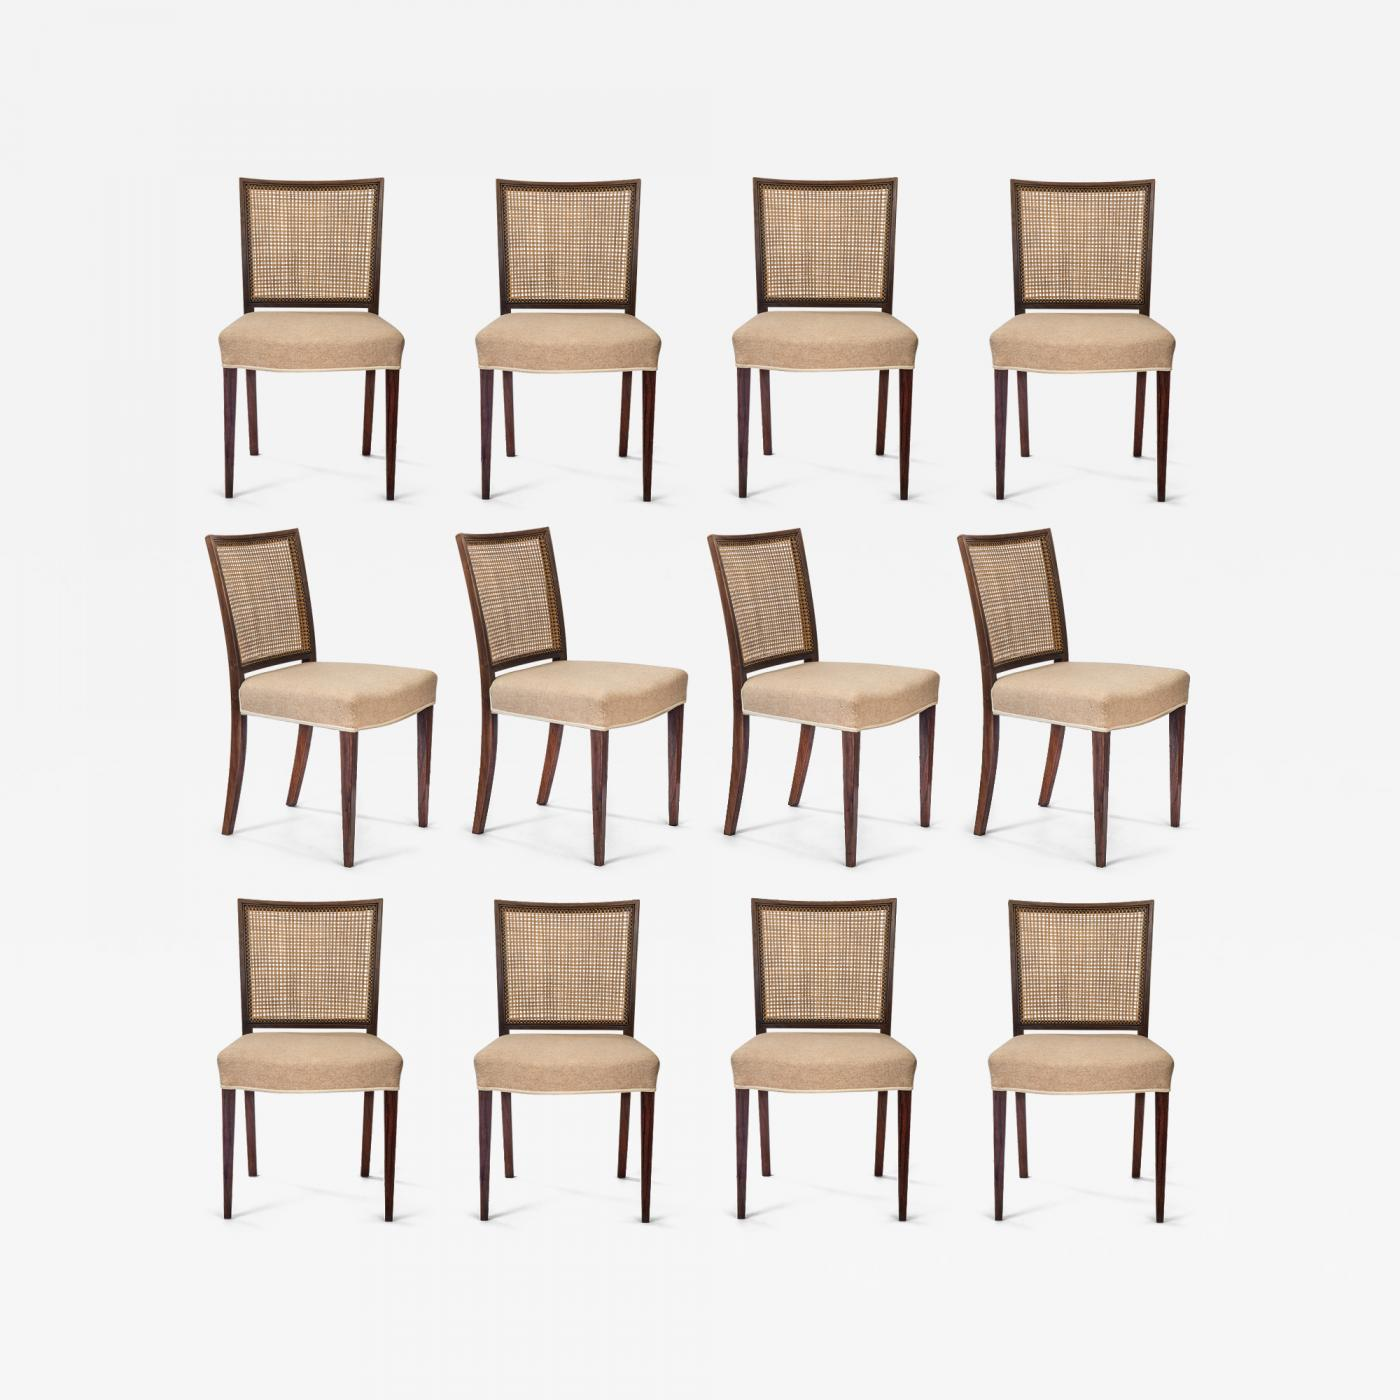 About A Chair 12 Side Chair.Ernst Kuhn Ernst Kuhn Set Of 12 Danish Caned Rosewood Side Chairs